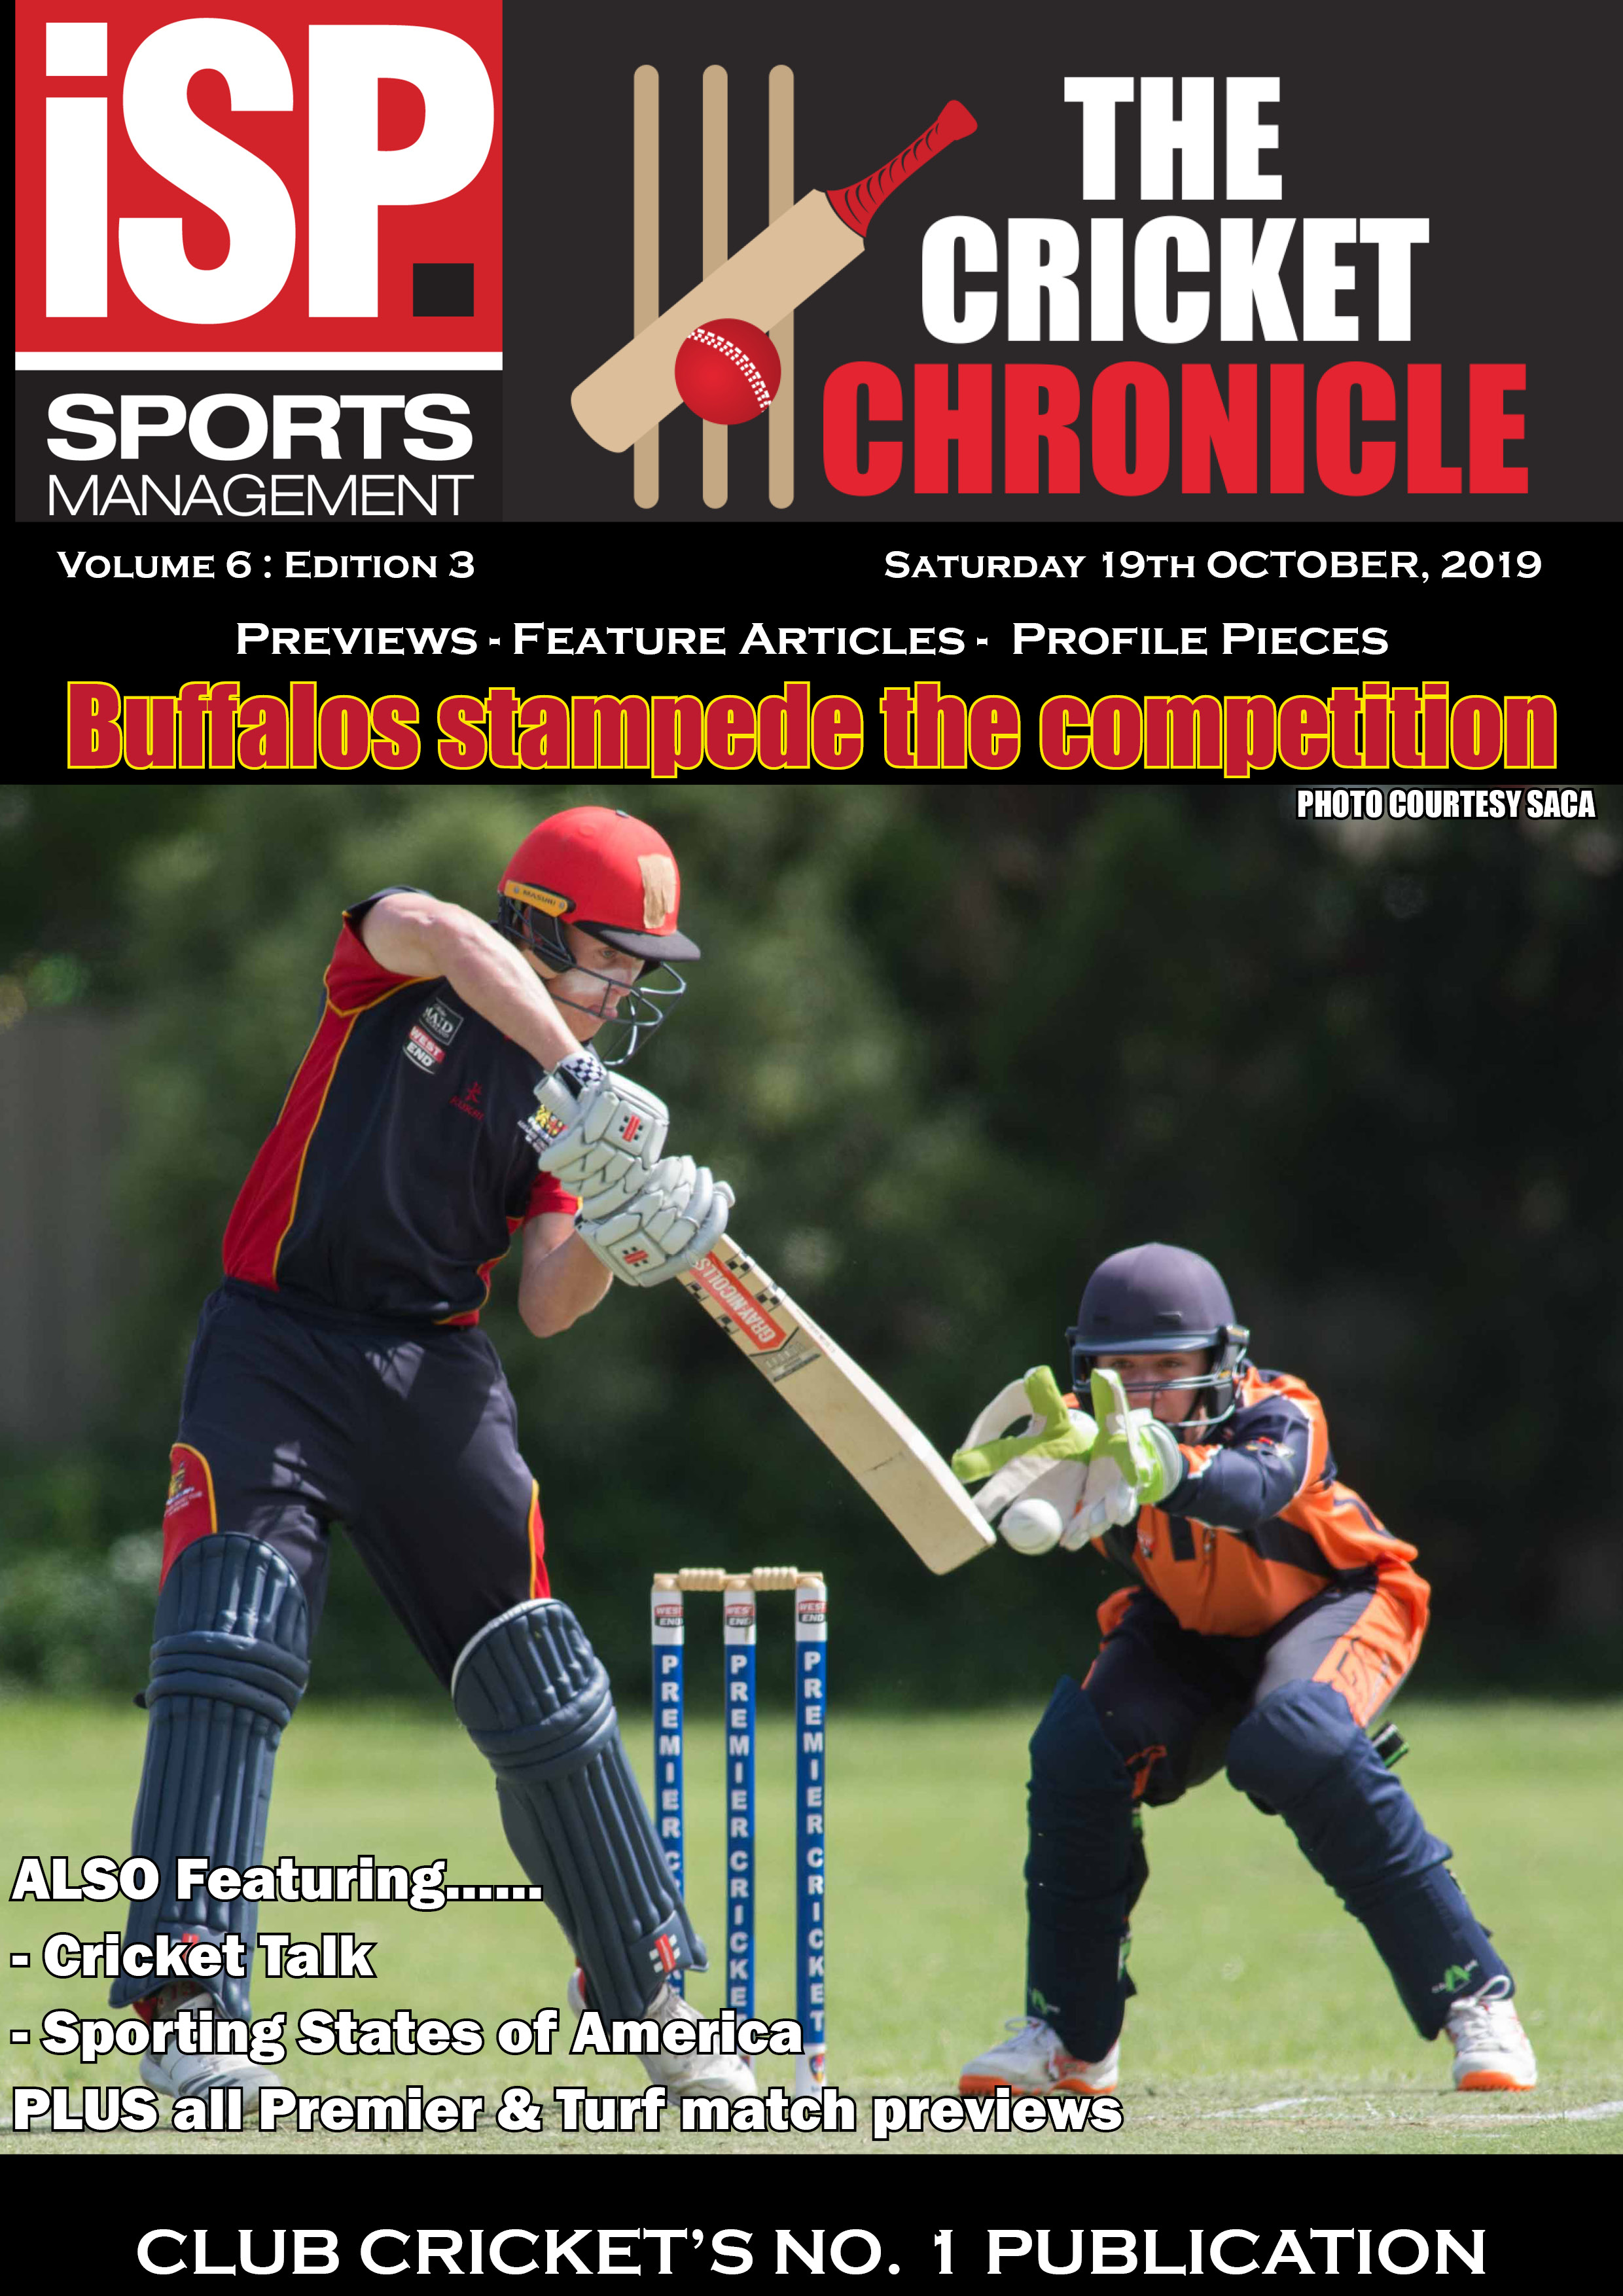 The Cricket Chronicle